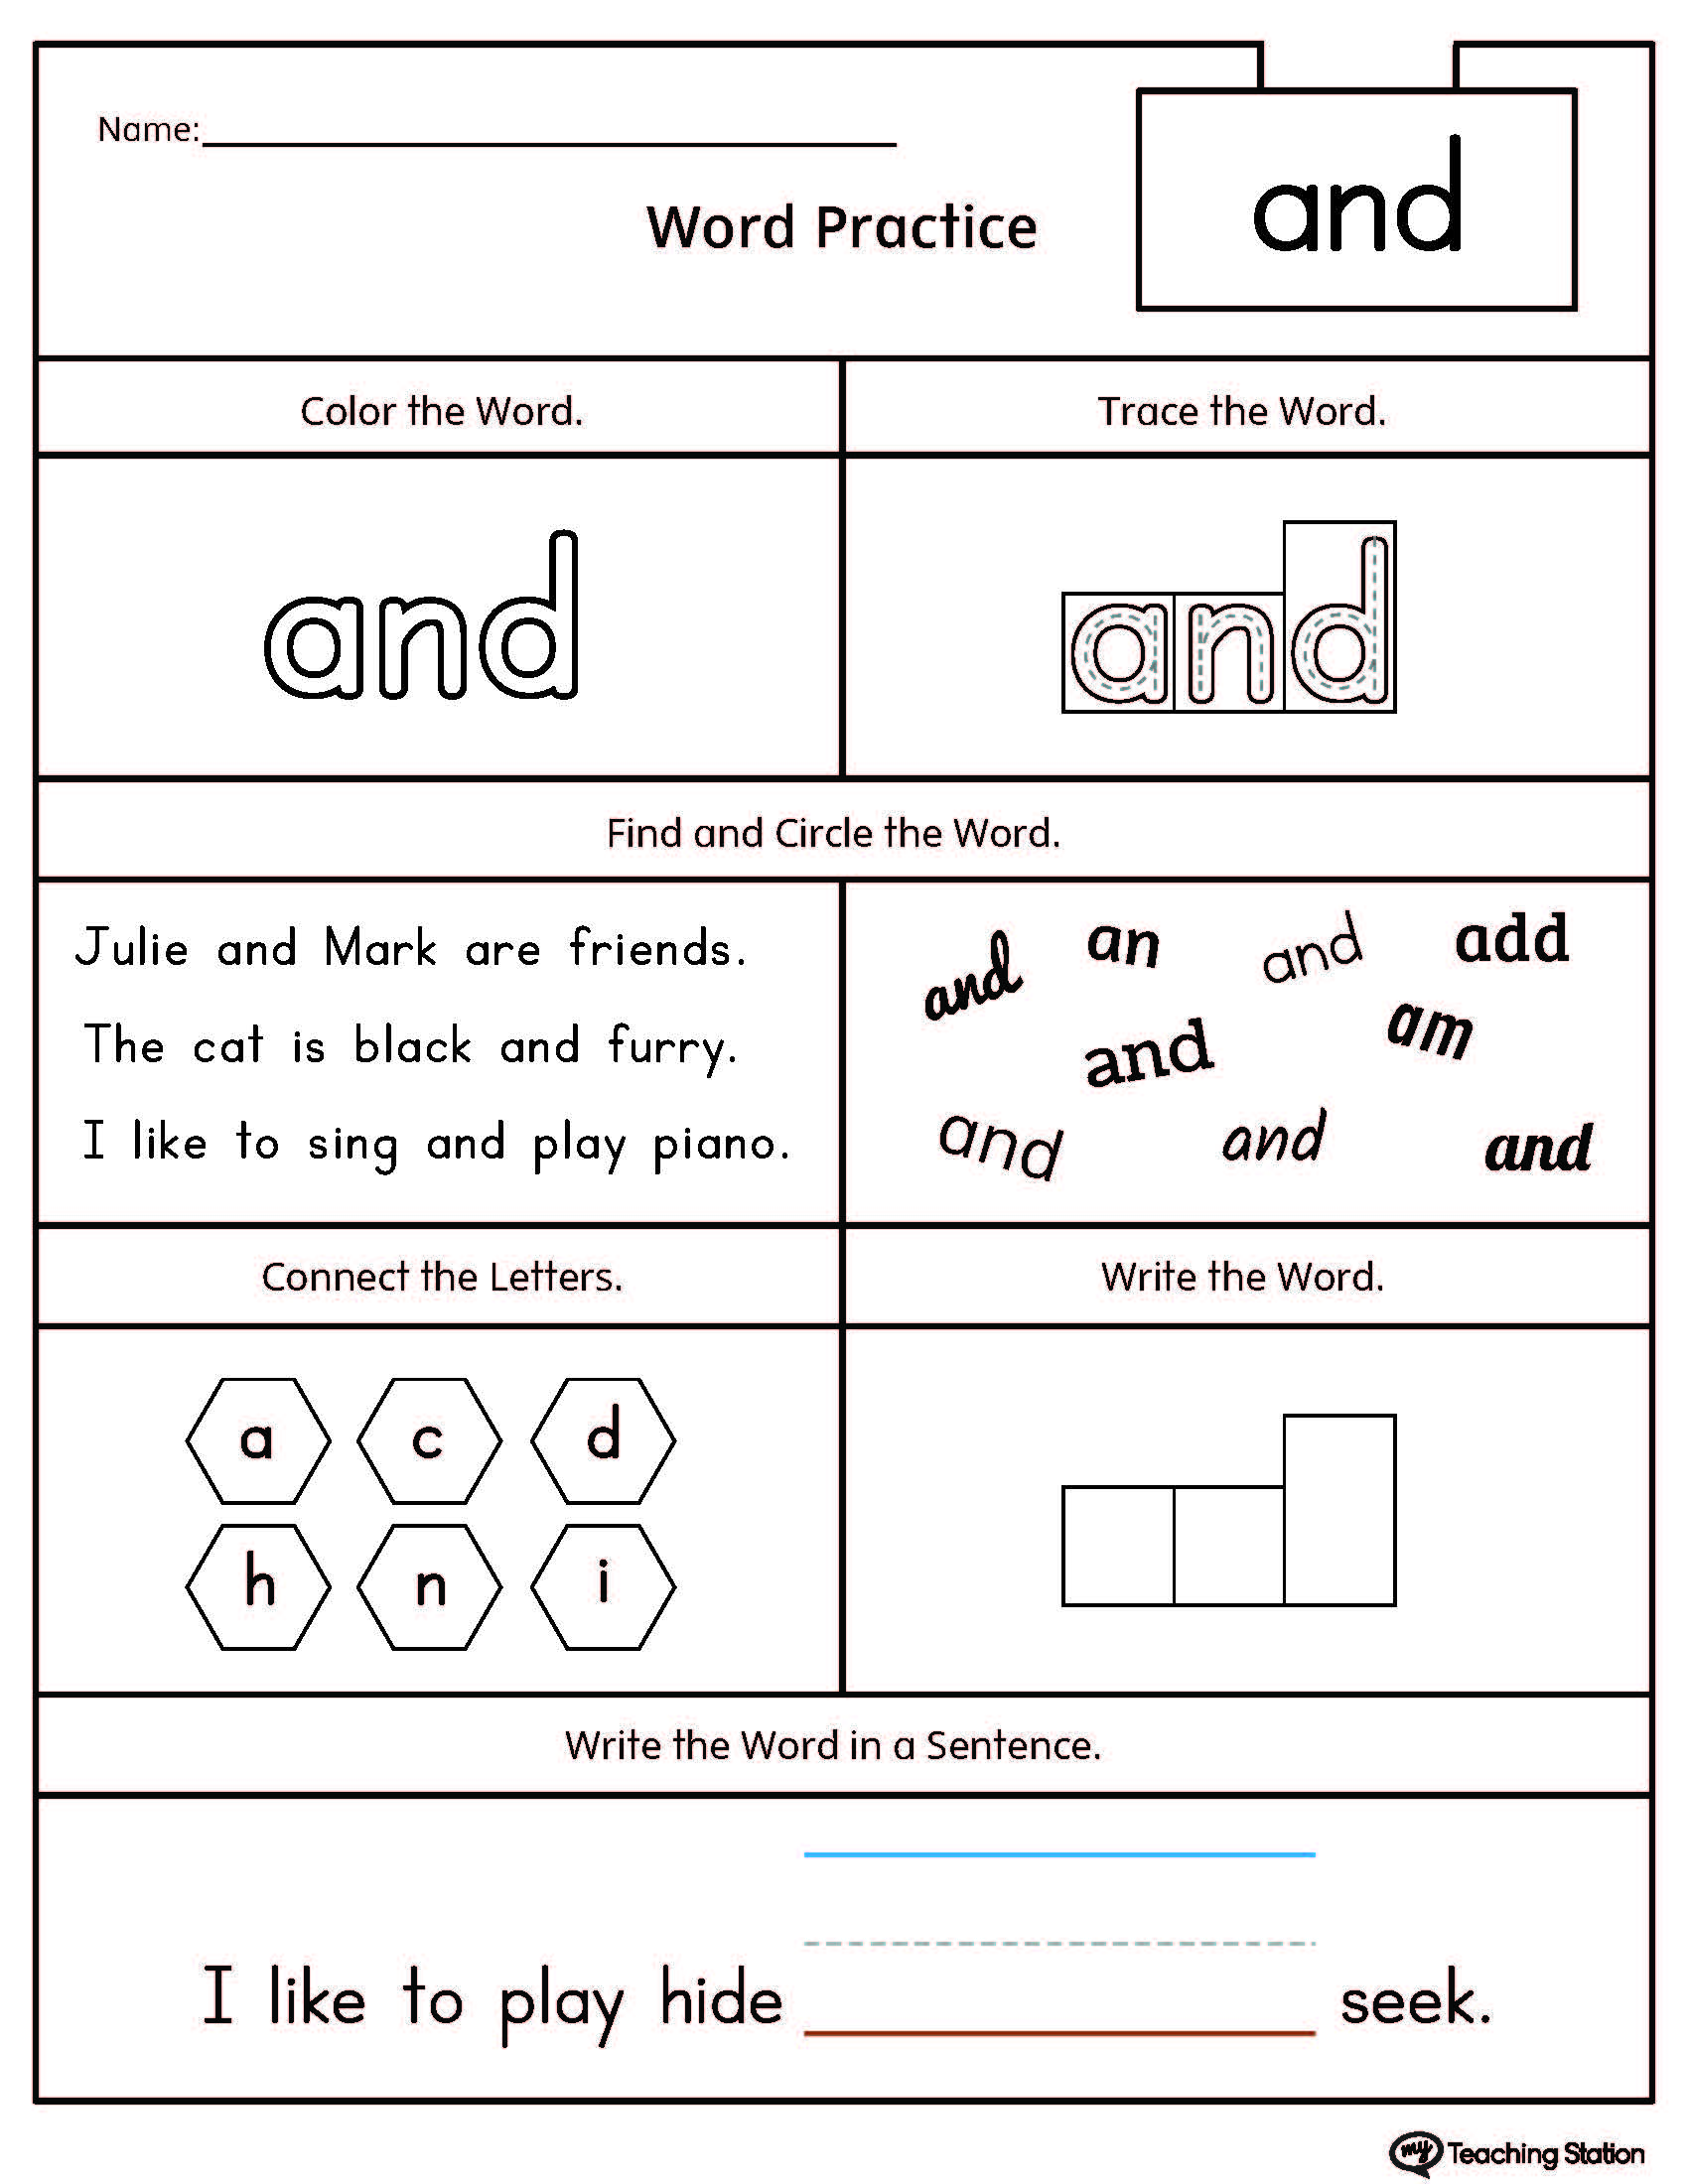 Preschool Patterns Printable Worksheets Myteachingstation Com Preschool Best Free Printable